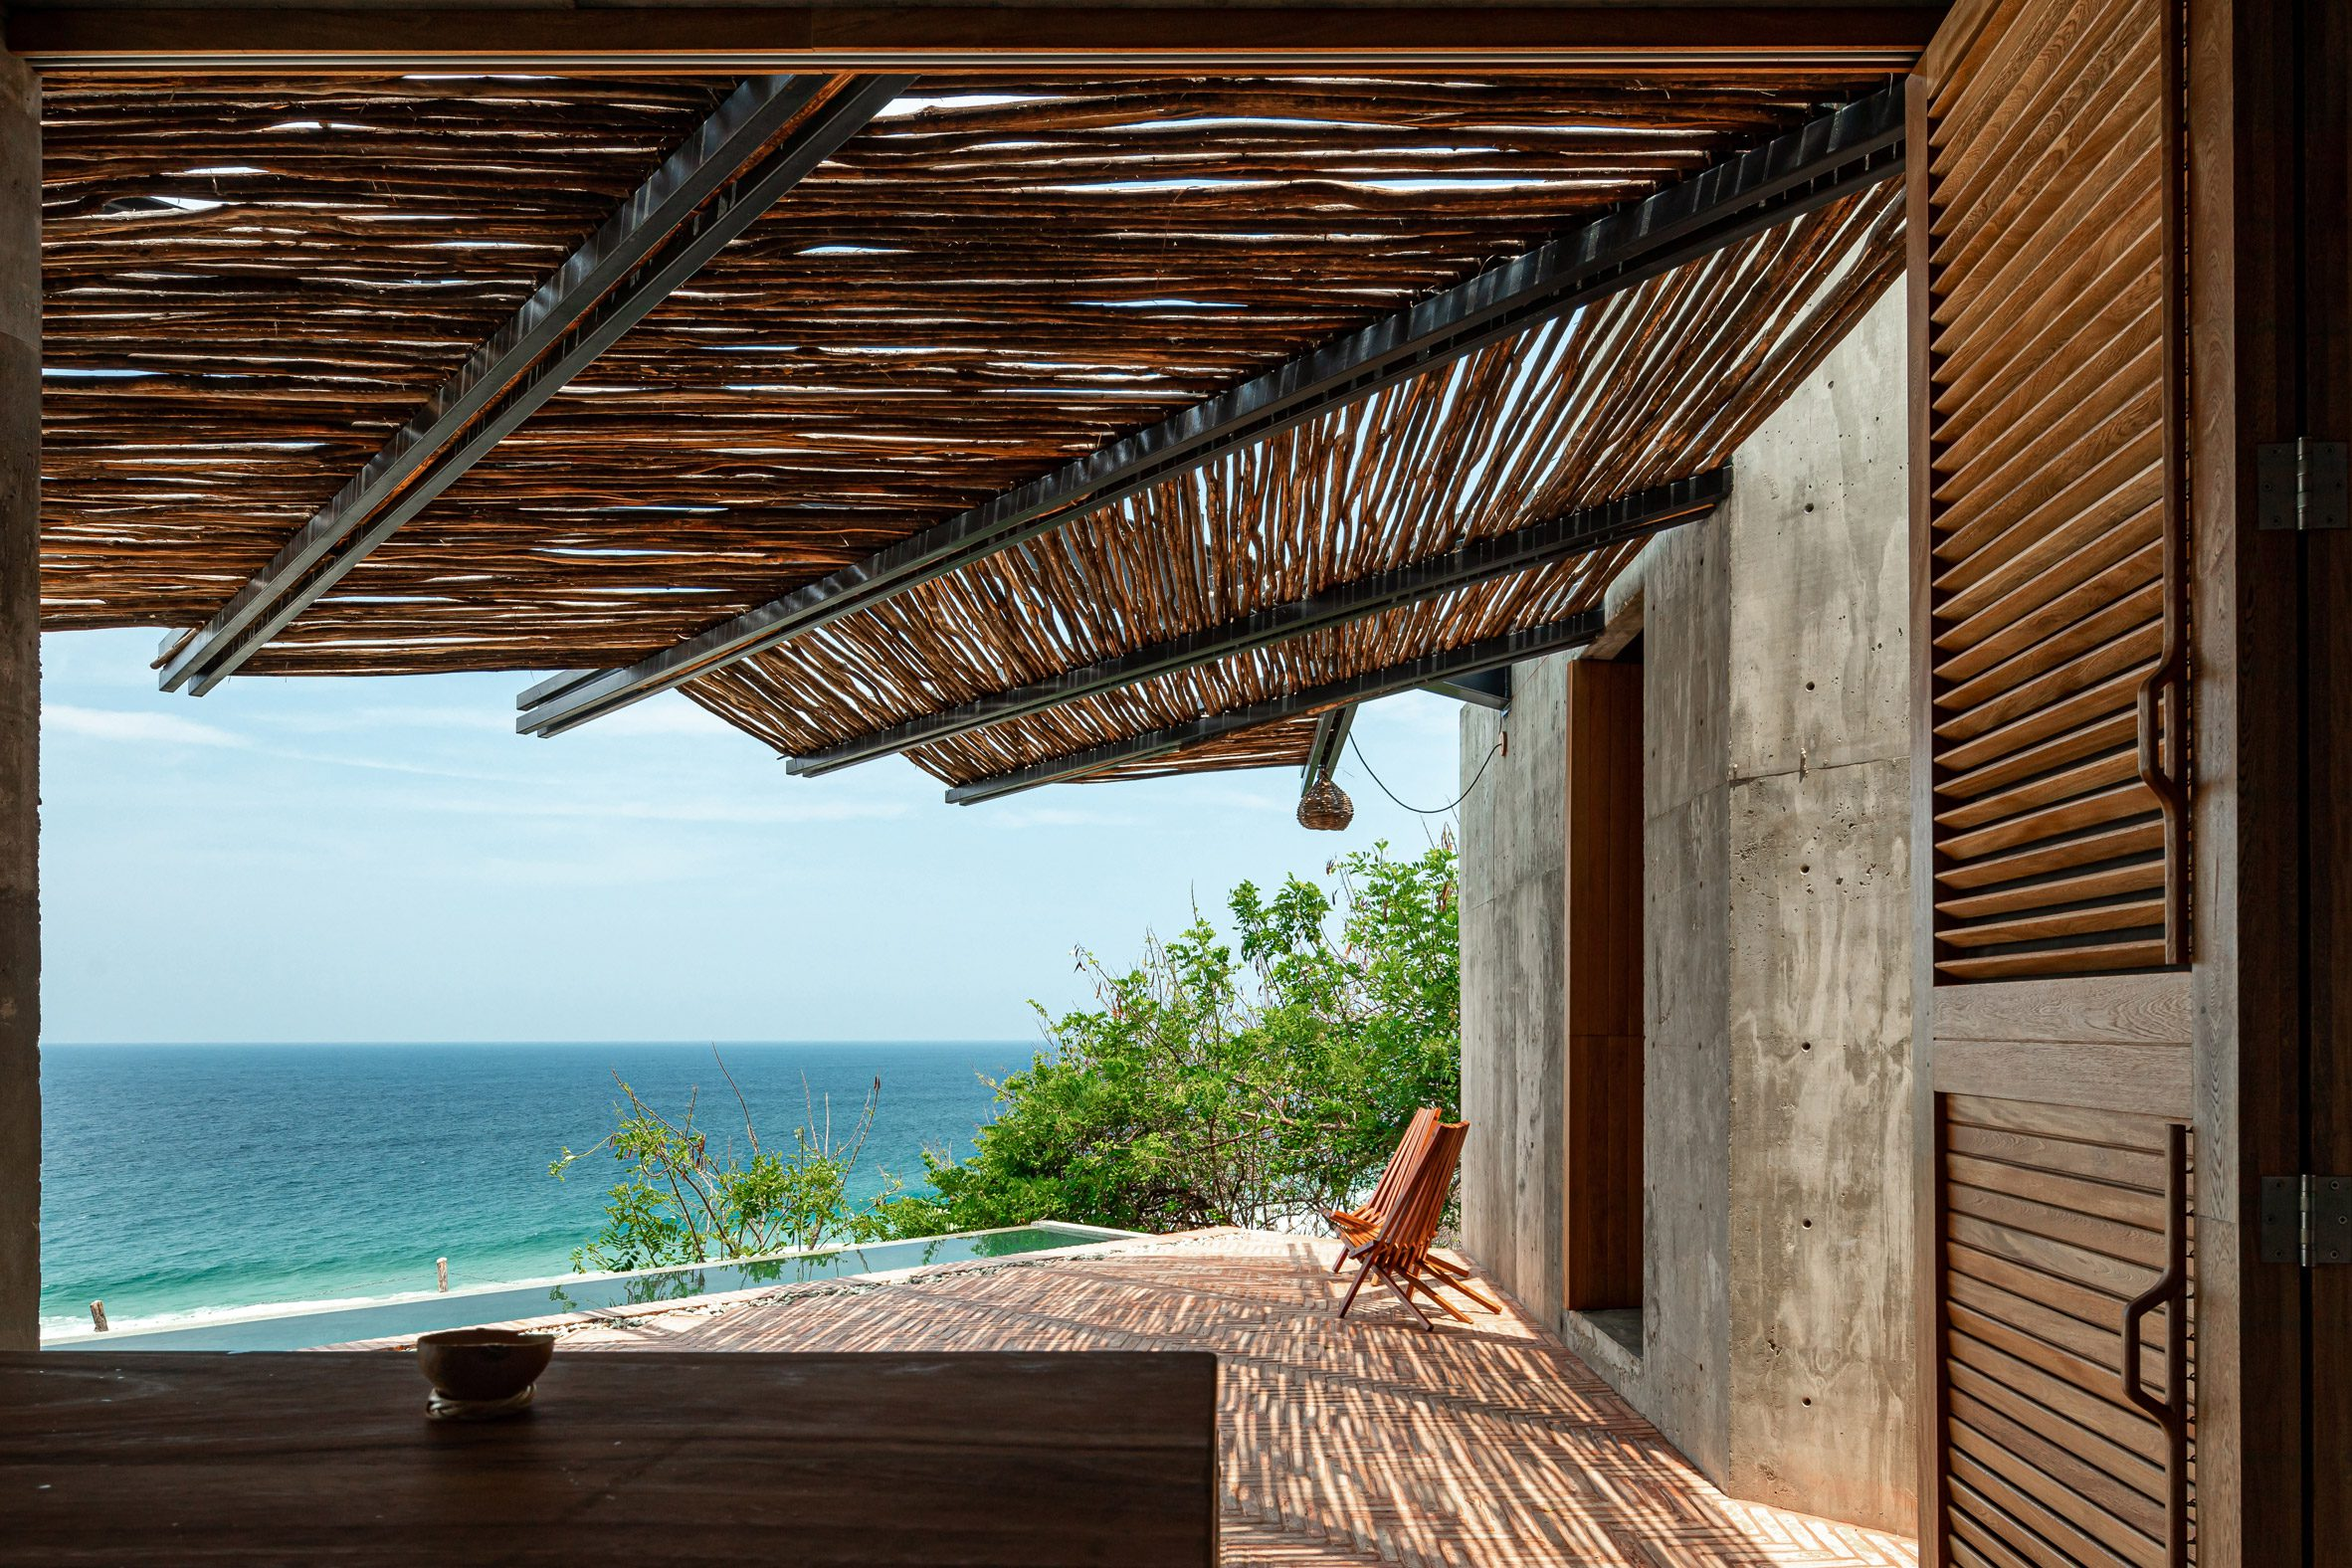 A chair on a deck overlooking the sea